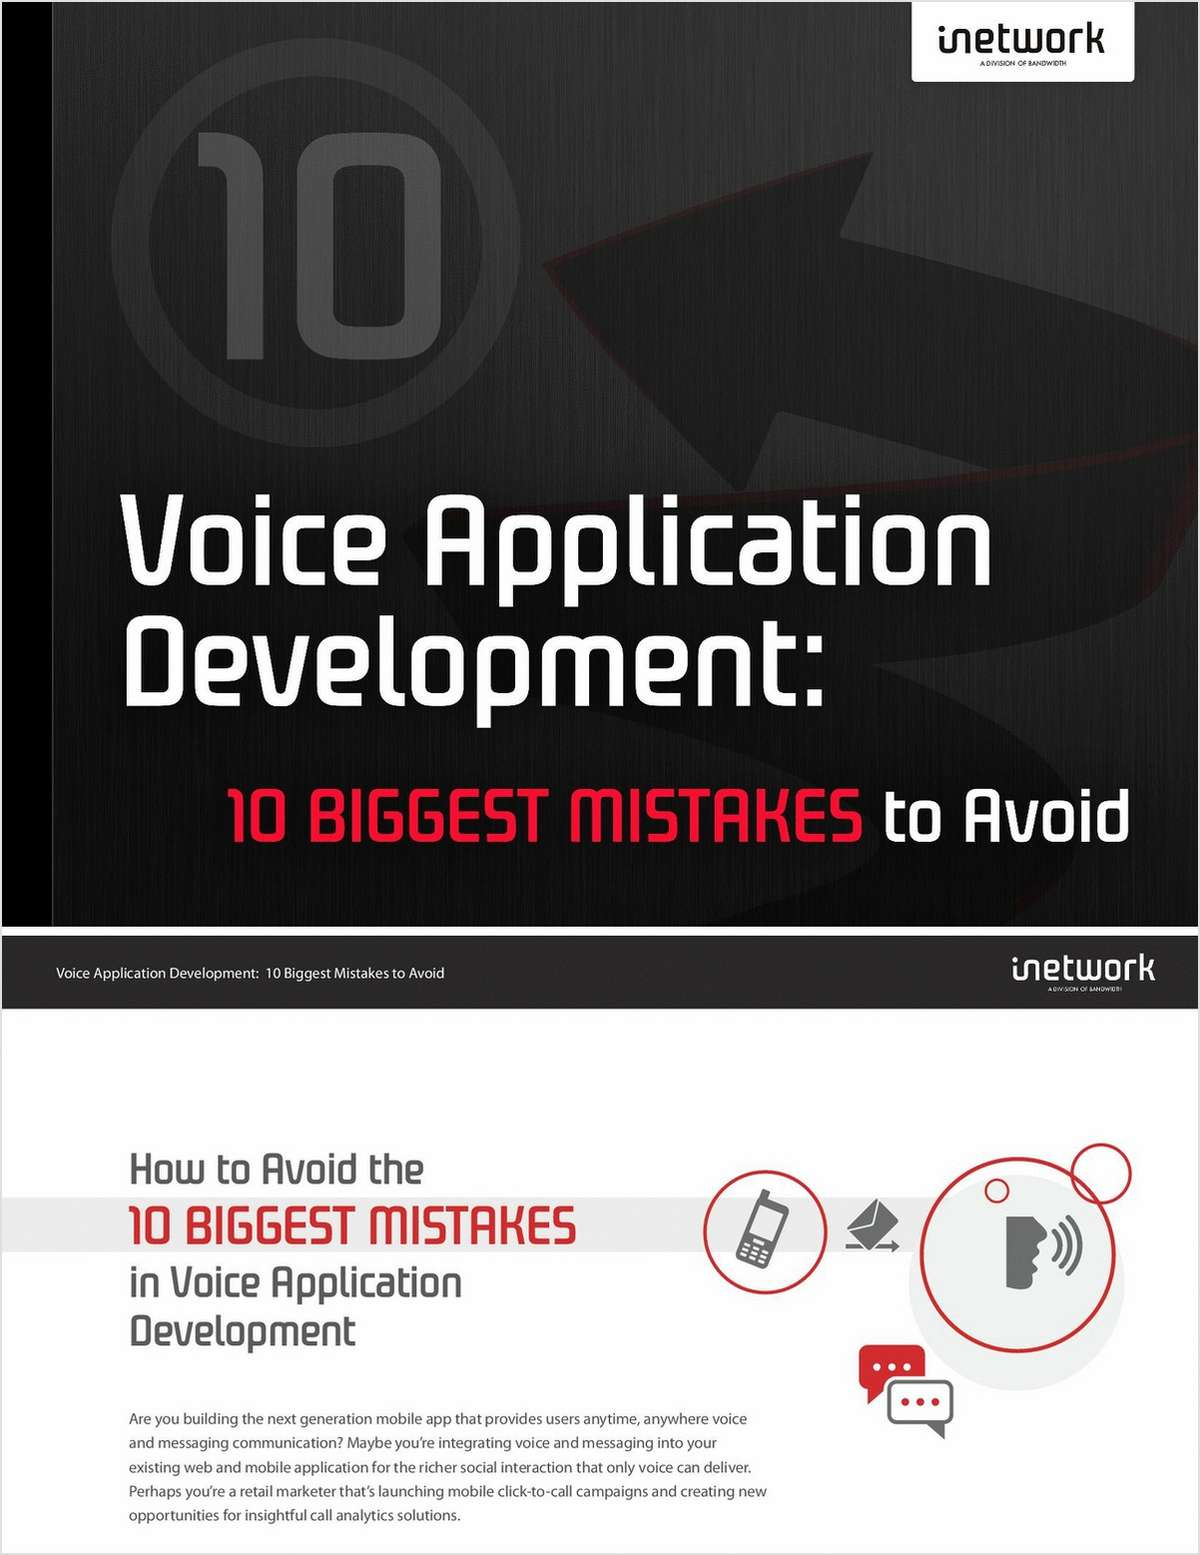 Voice Application Development: 10 Biggest Mistakes to Avoid